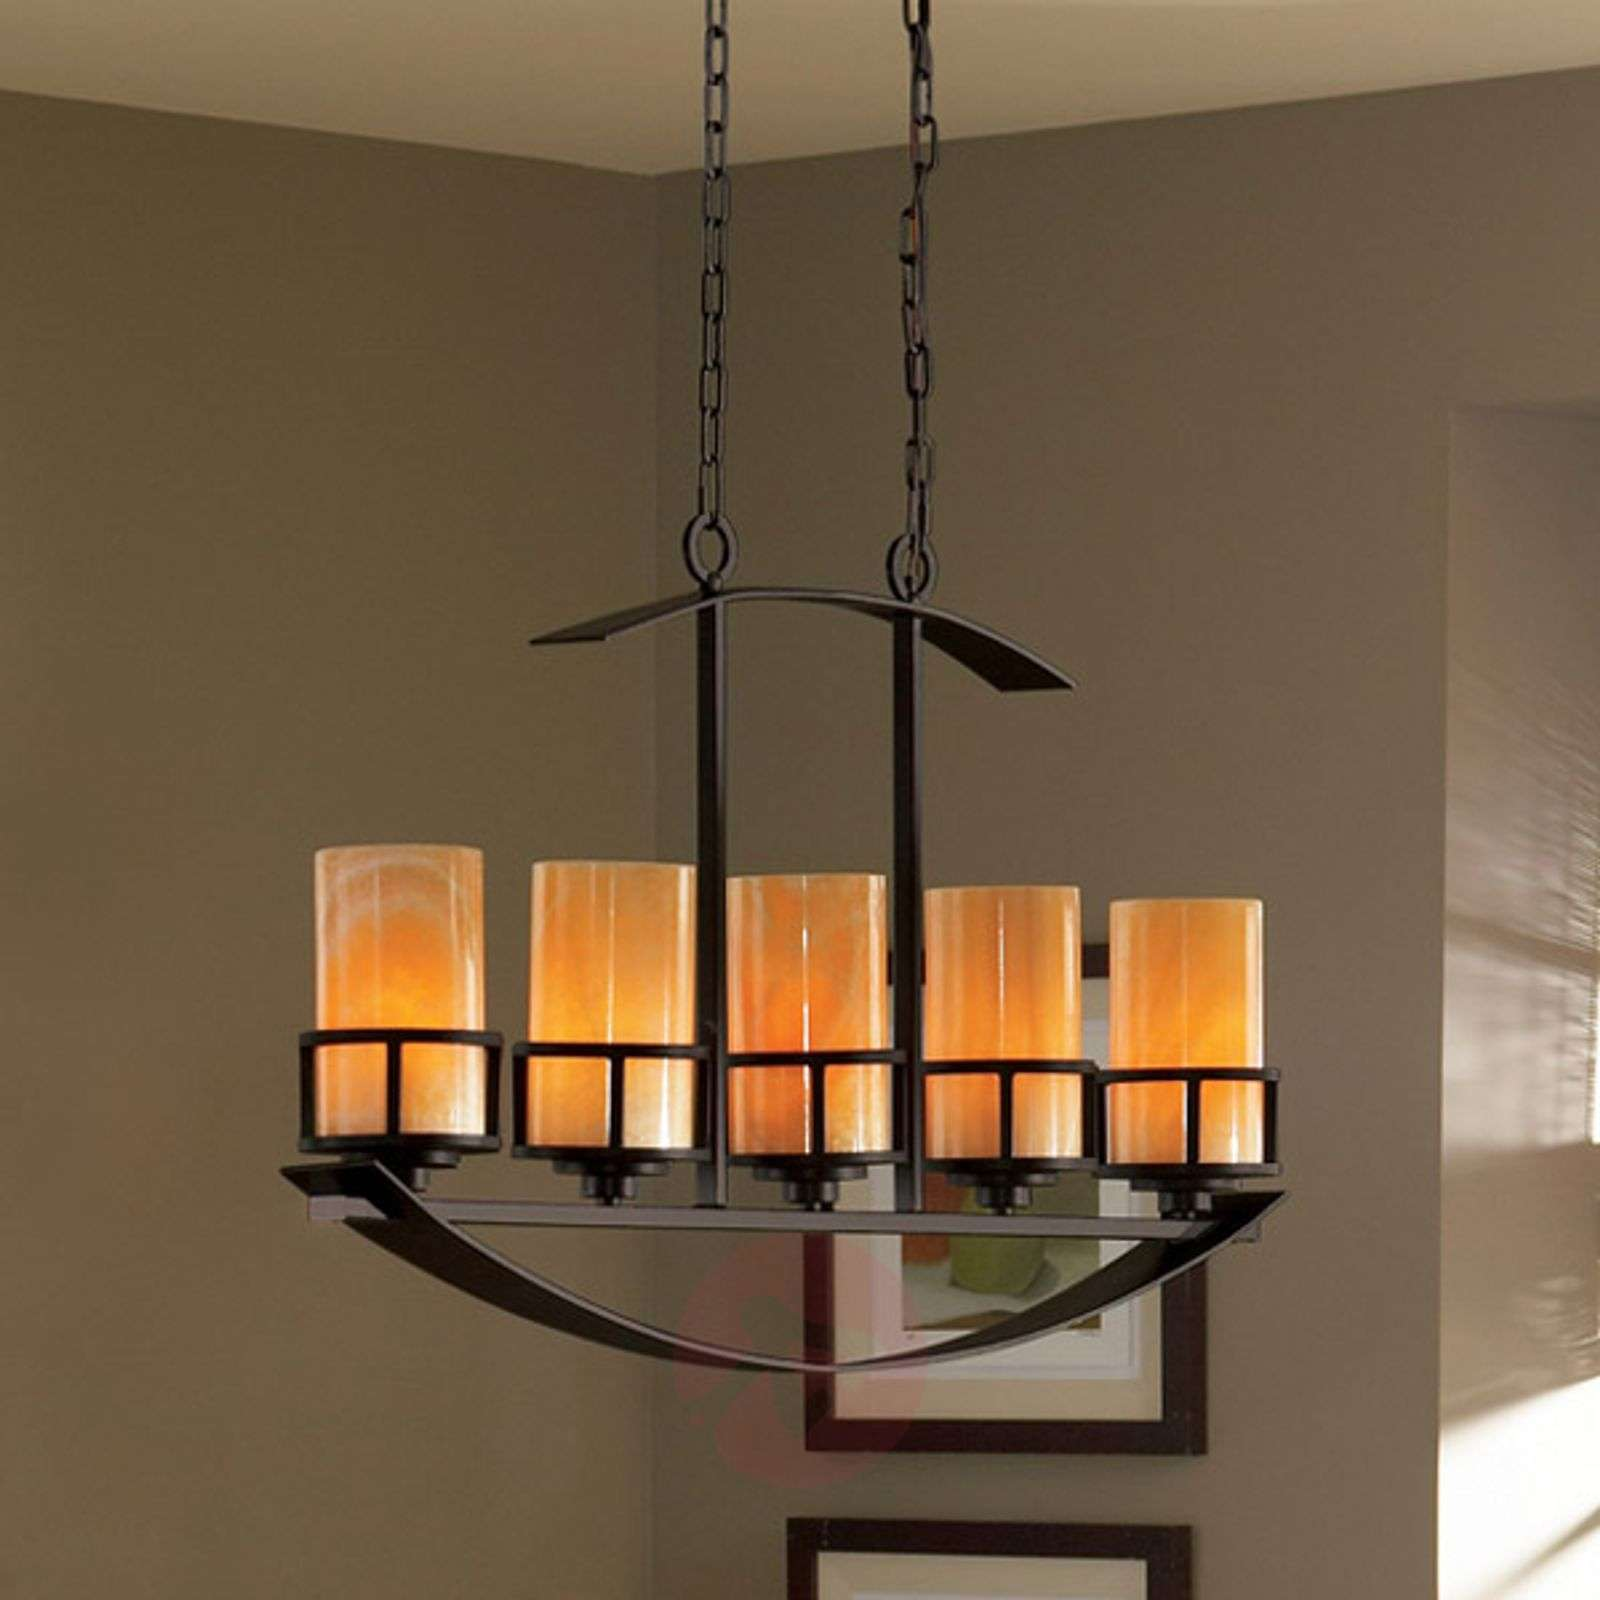 Long pendant light Kyle with 5 onyx lampshades